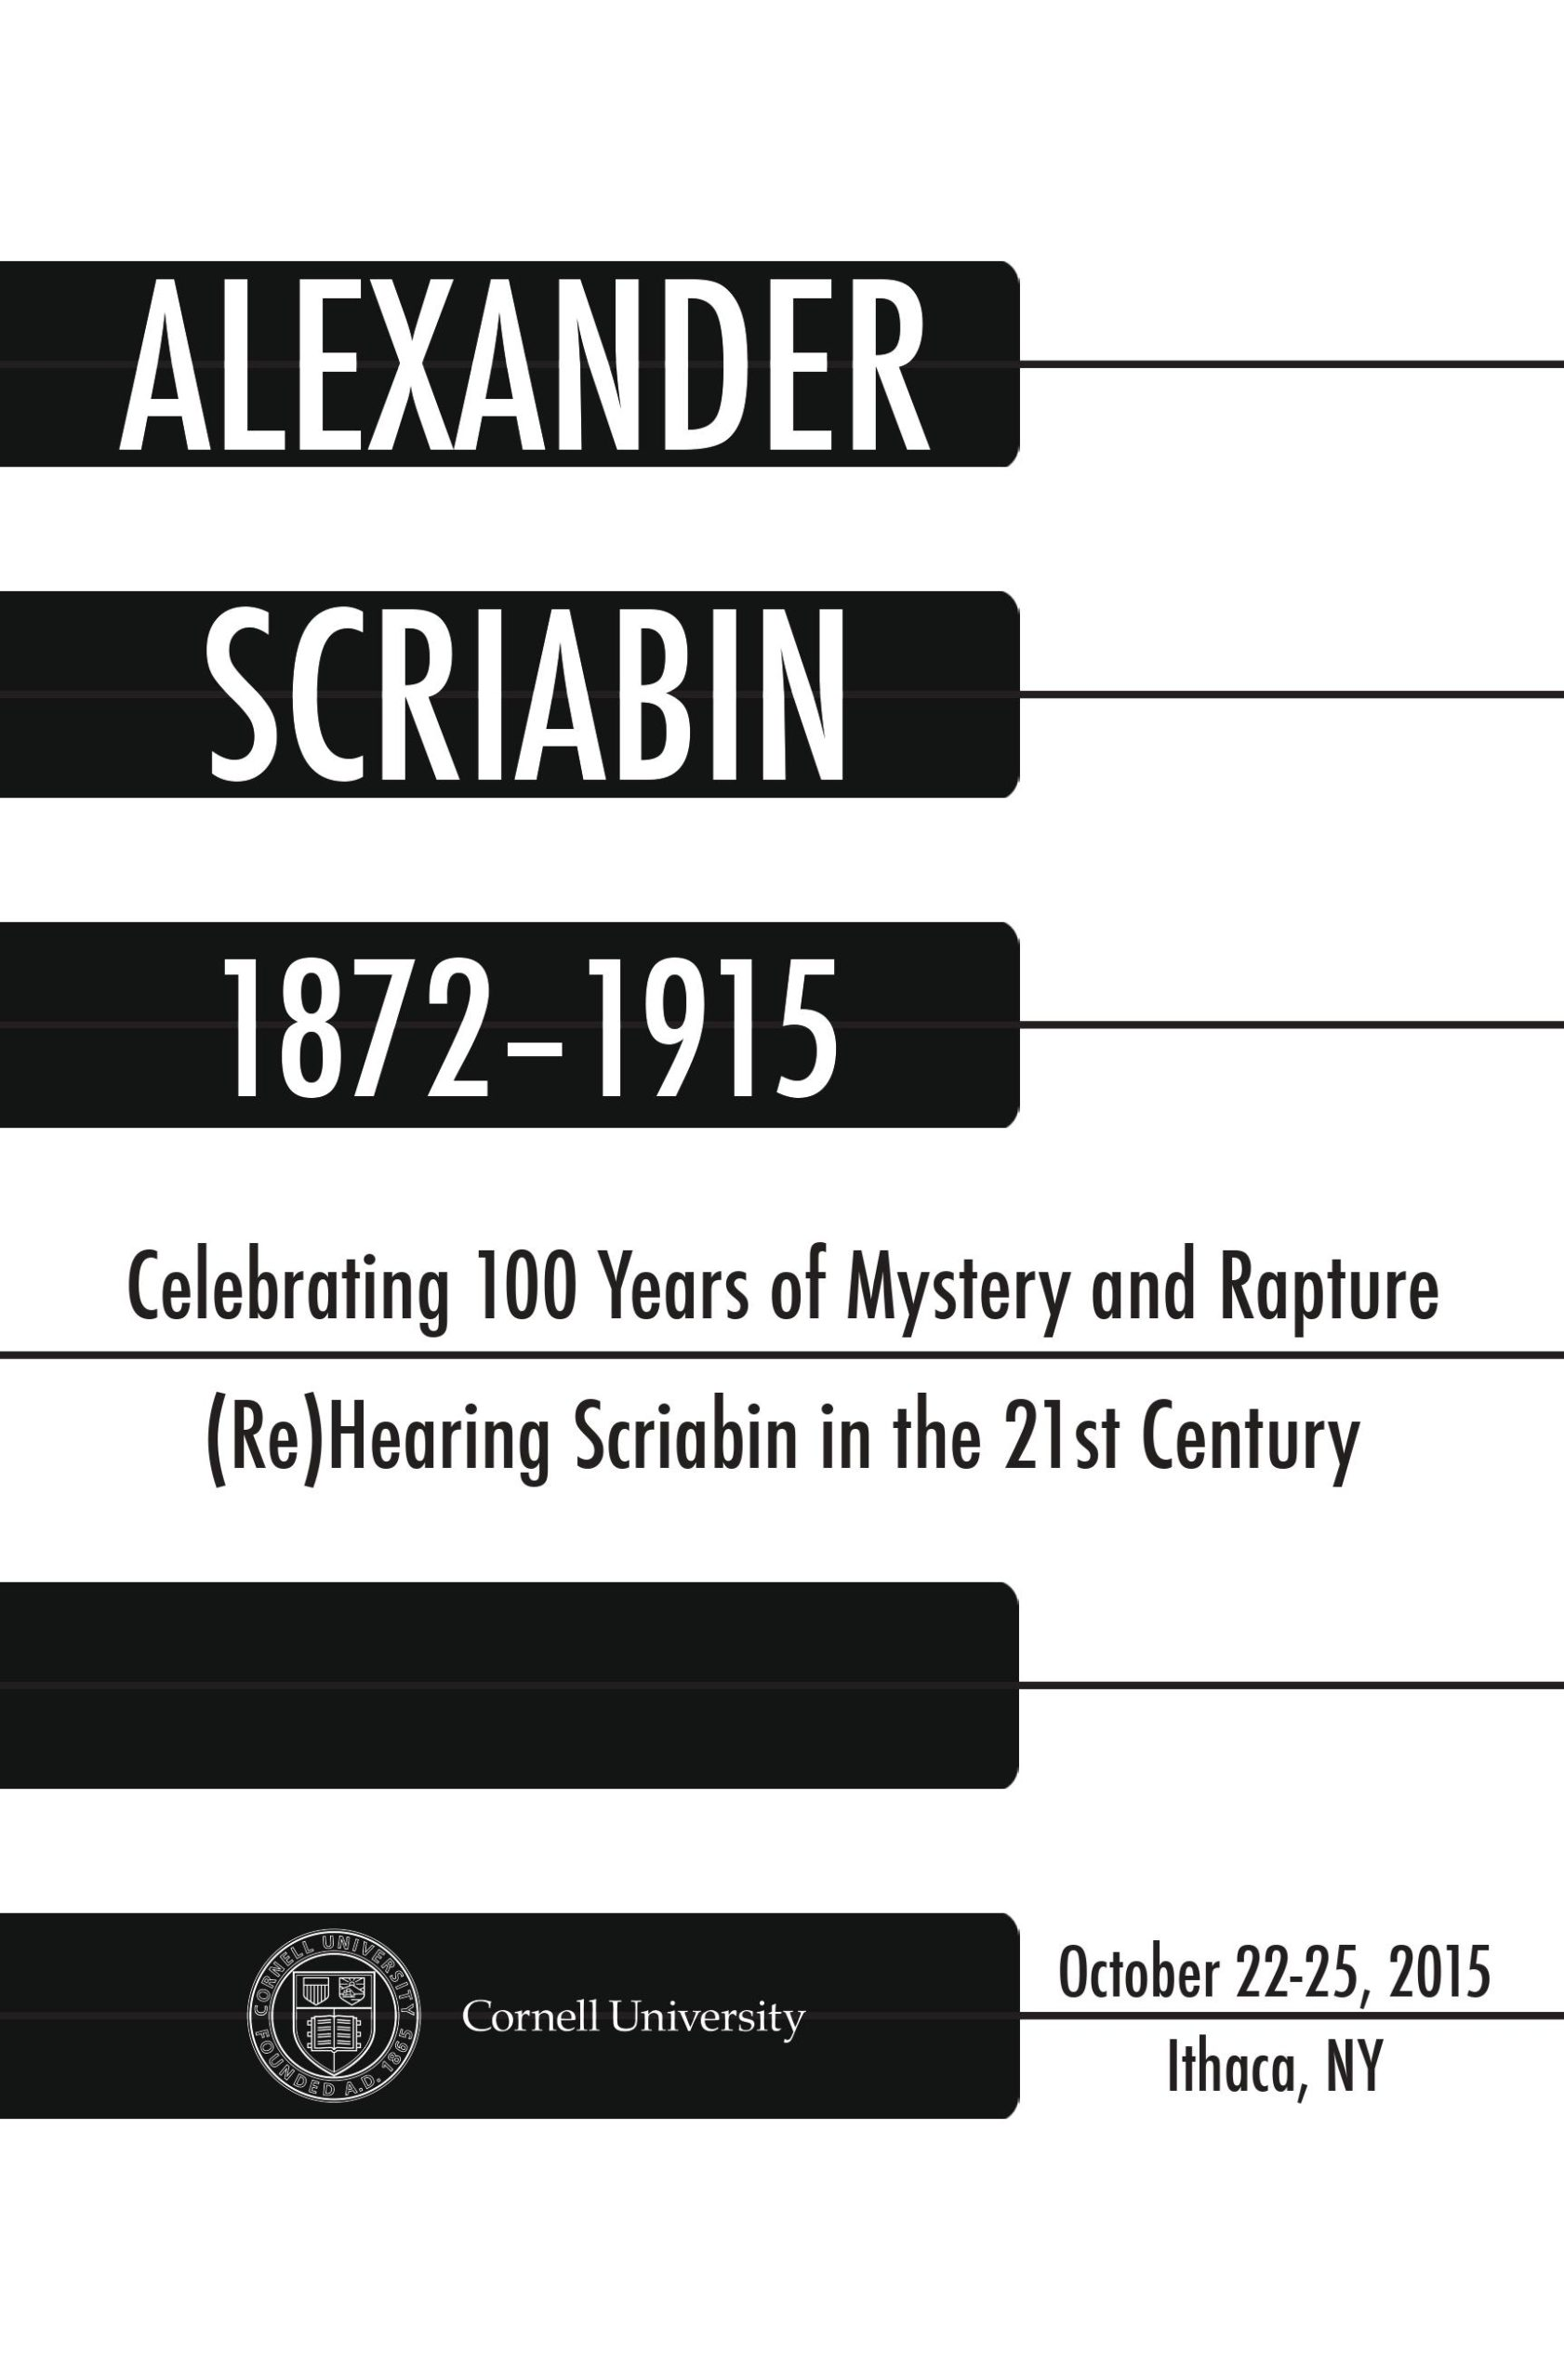 Poster for Alexander Scriabin: Celebrating 100 Years of Mystery and Rapture